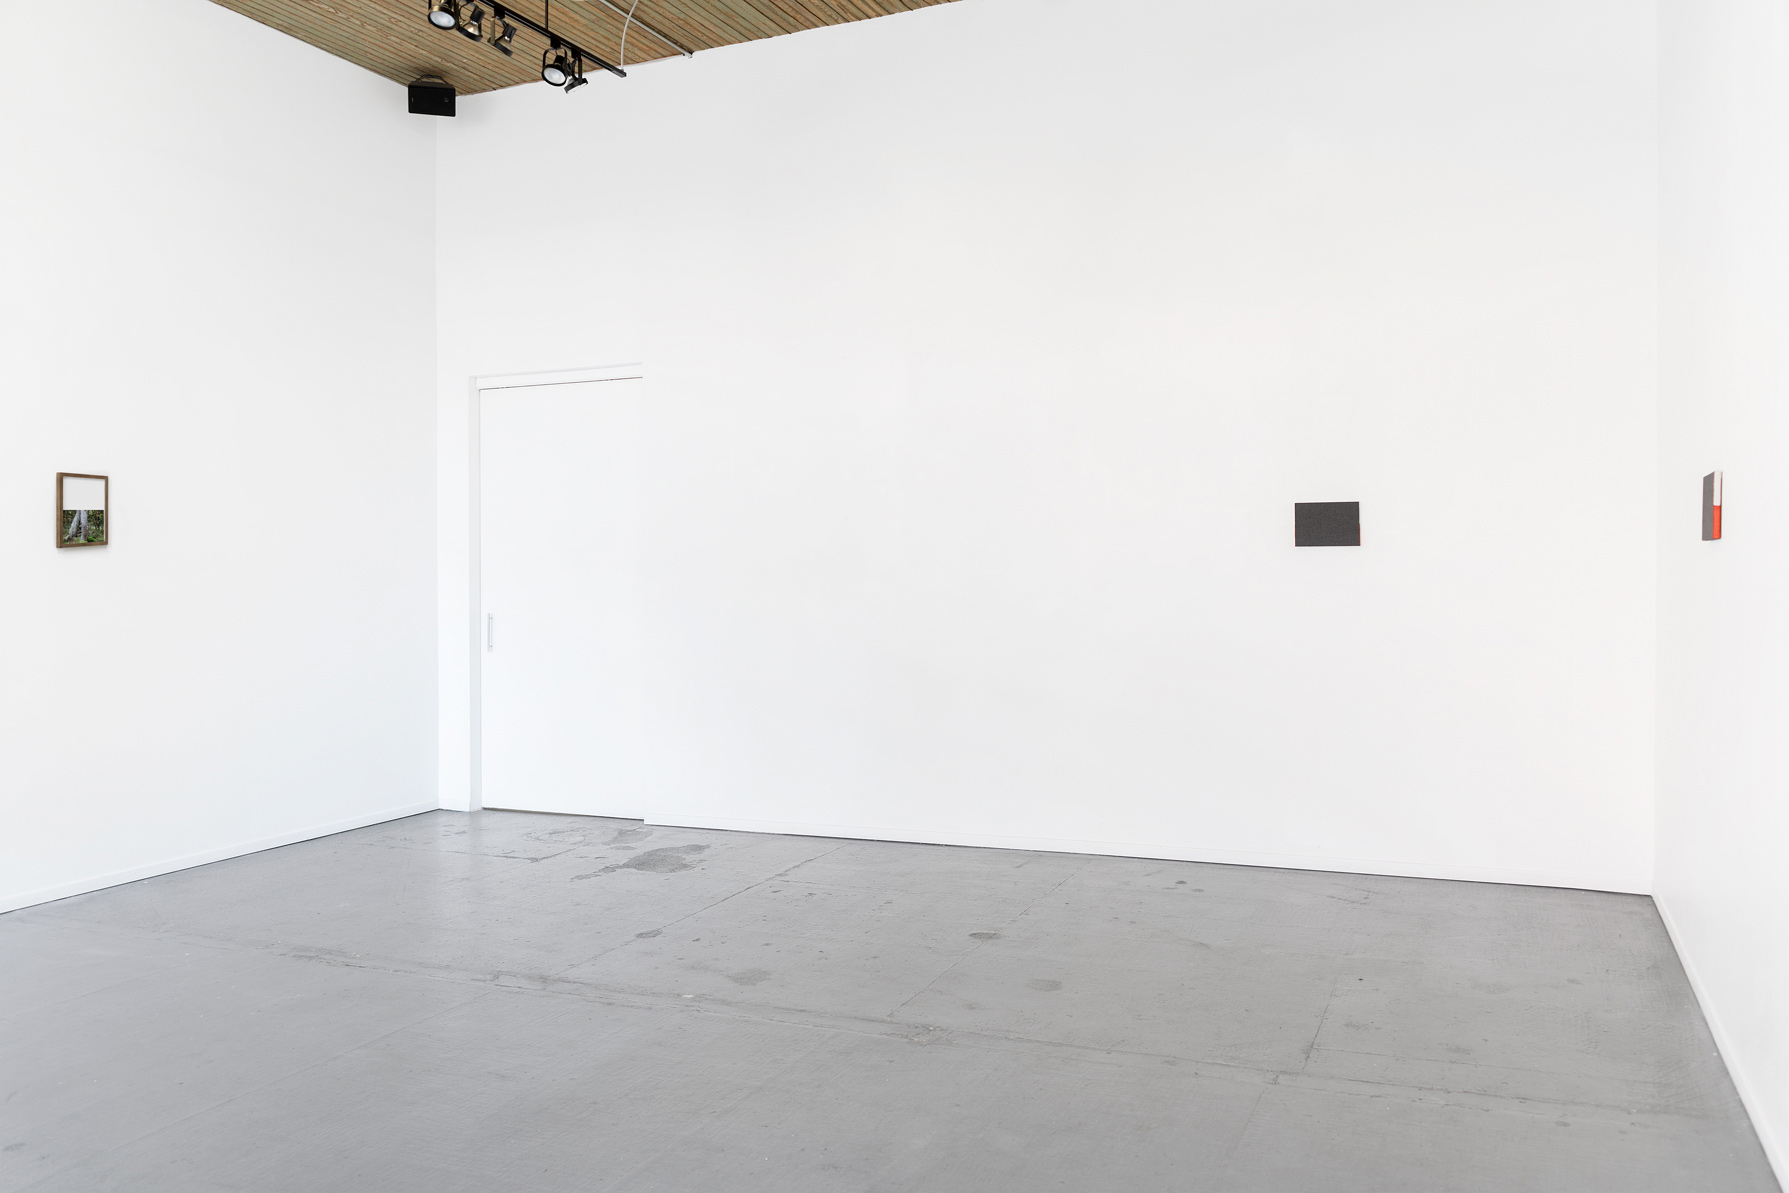 '≠' Painting by Irene Grau for Maus Contemporary, Birgmingham (US)